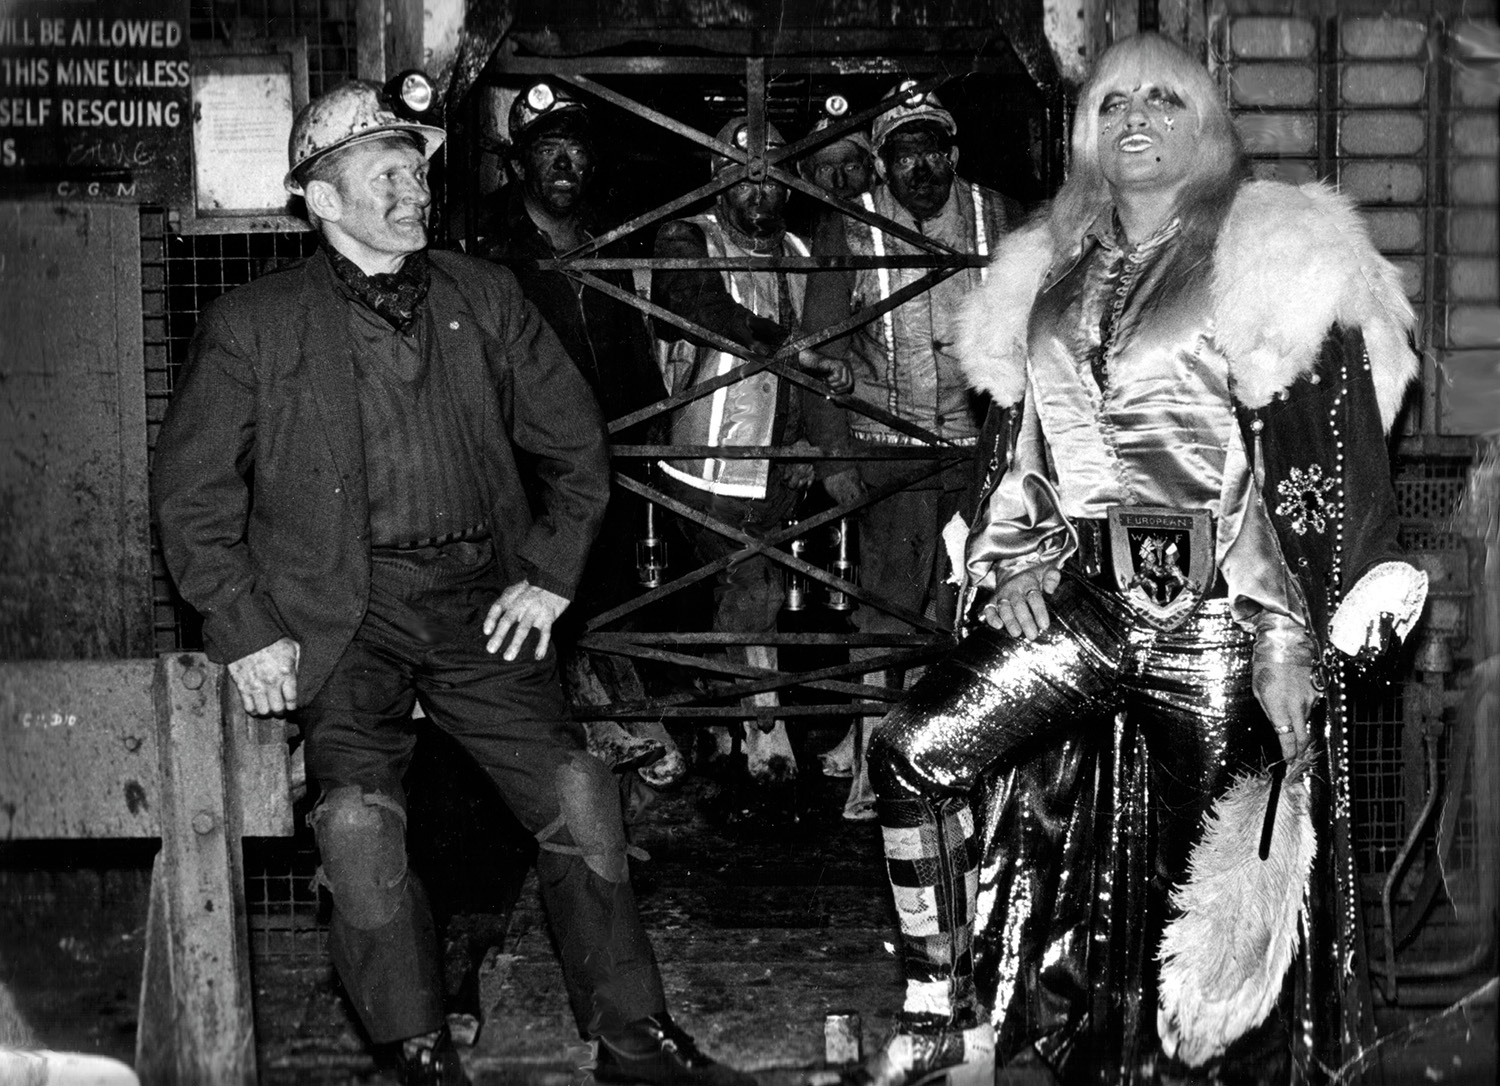 Adrian Street with his father at the pithead of Bryn Mawr Colliery, Wales, 1973